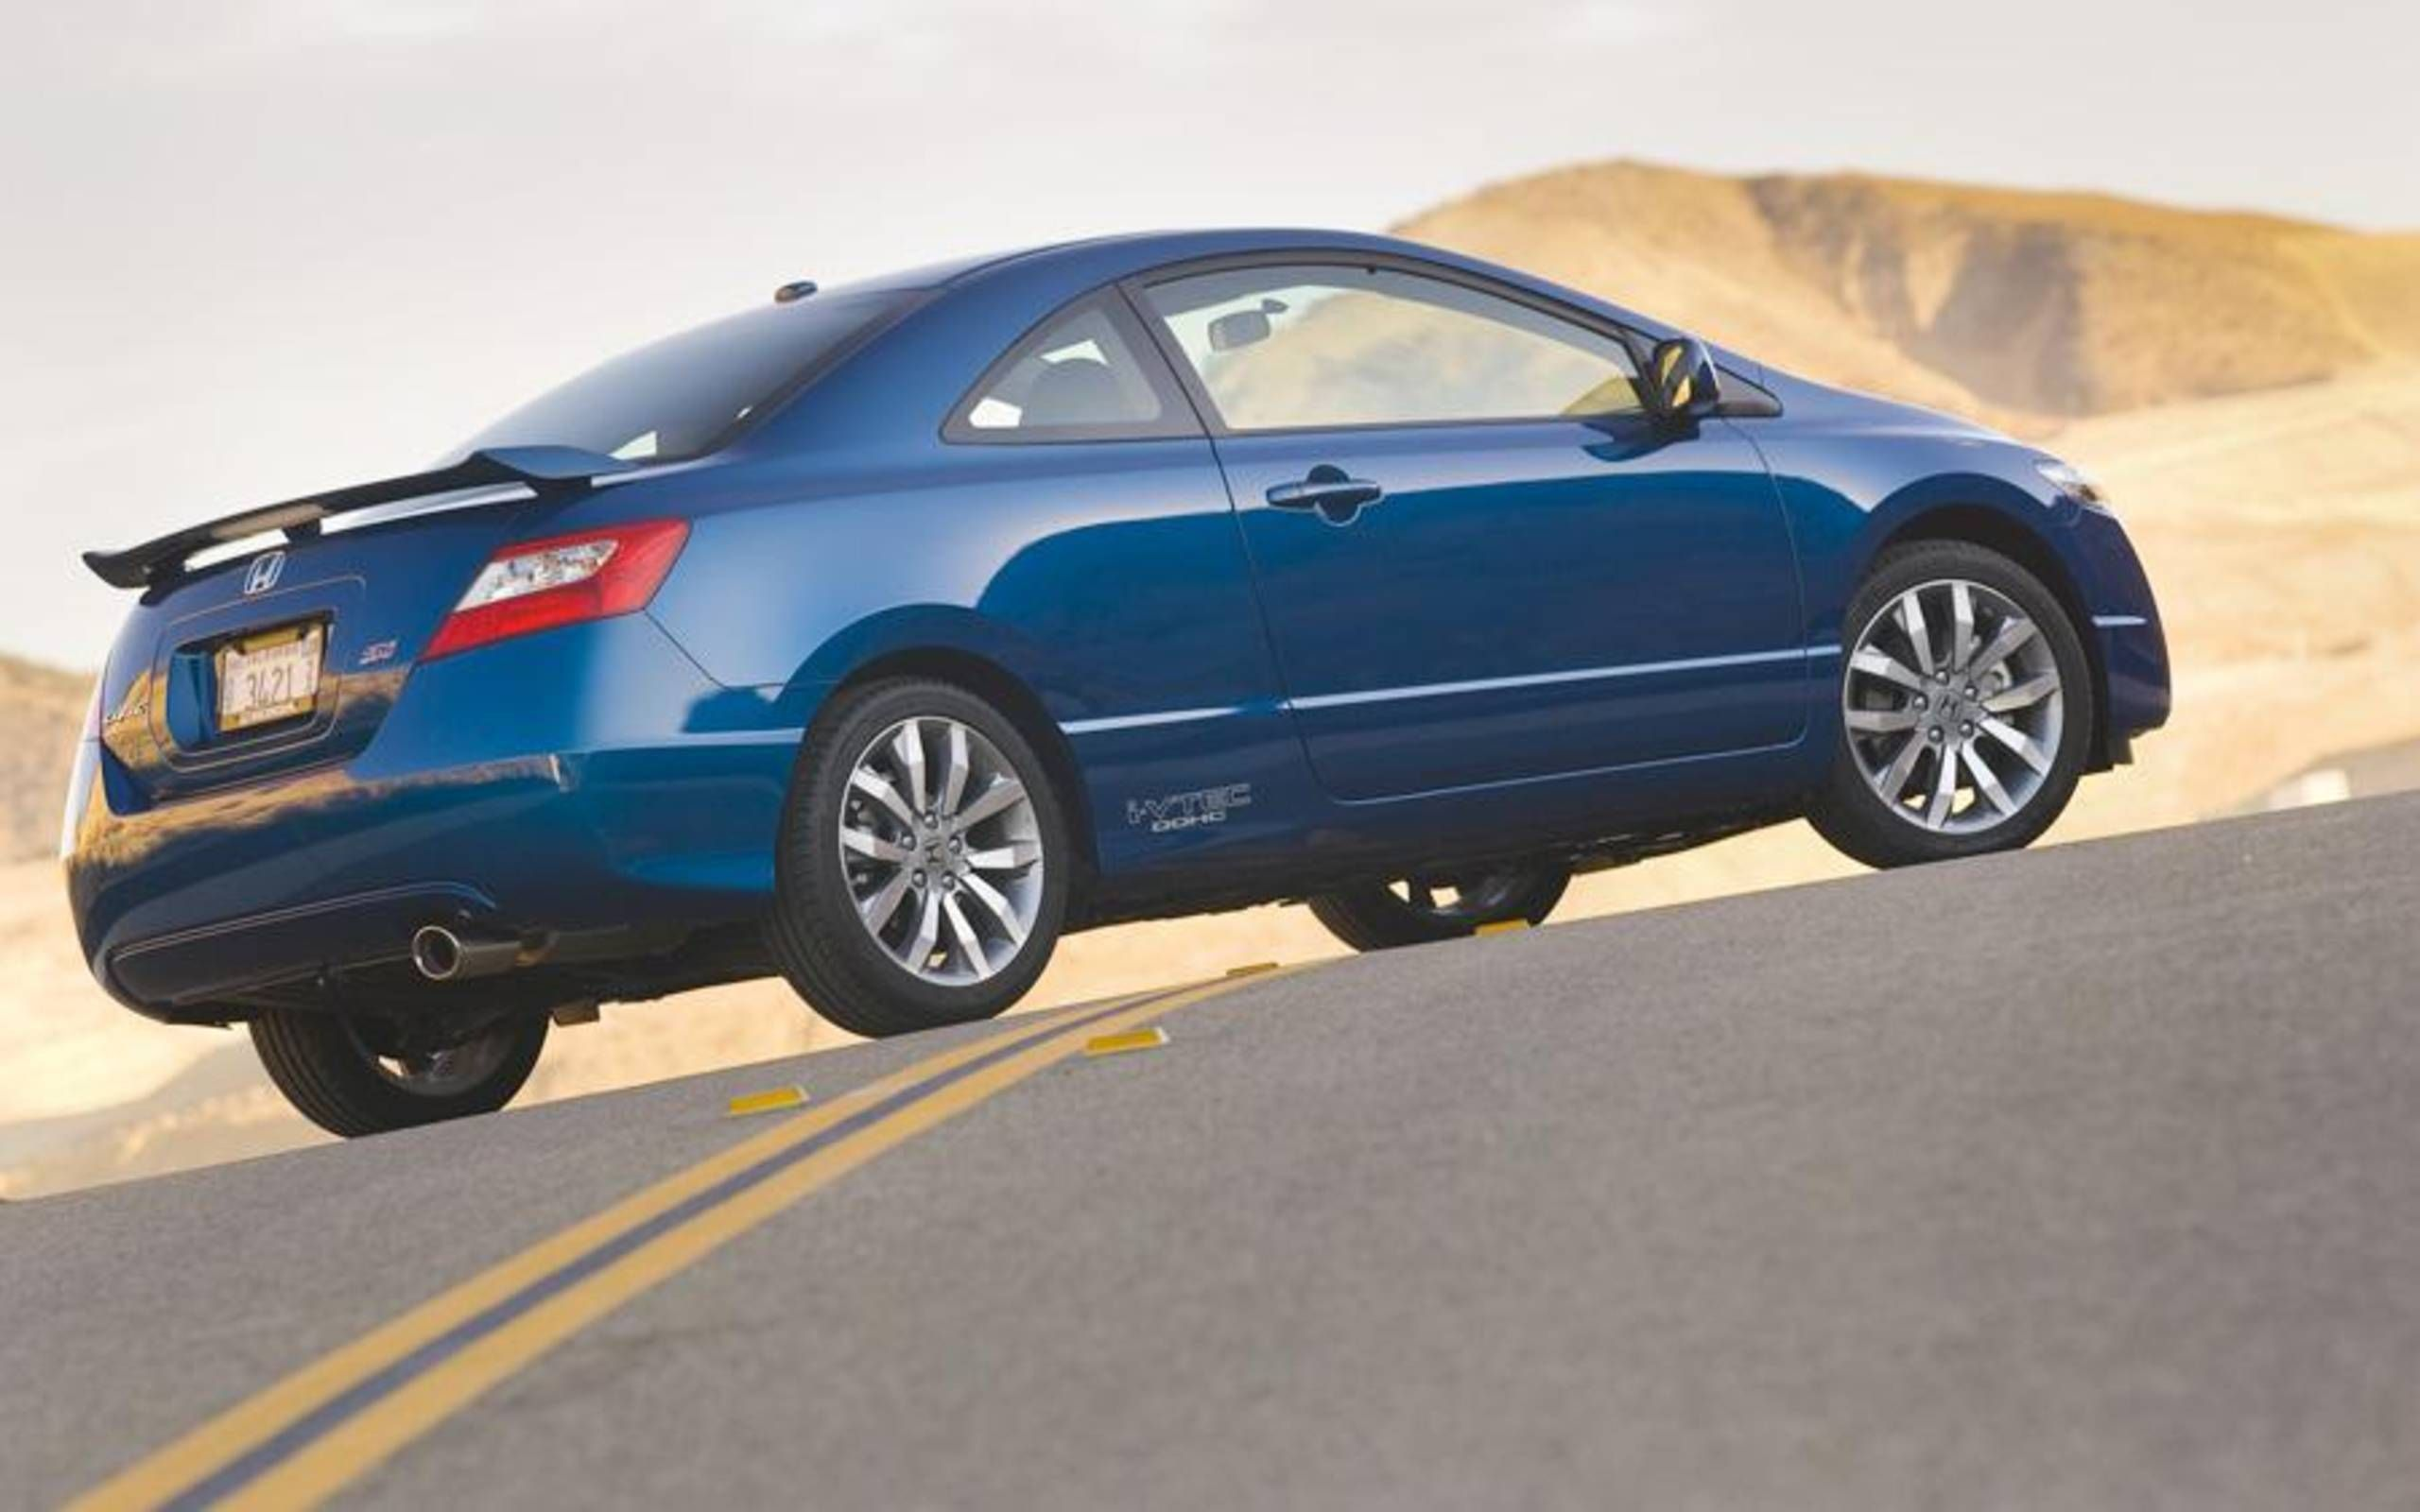 09 Honda Civic Si Coupe An Autoweek Performance Review